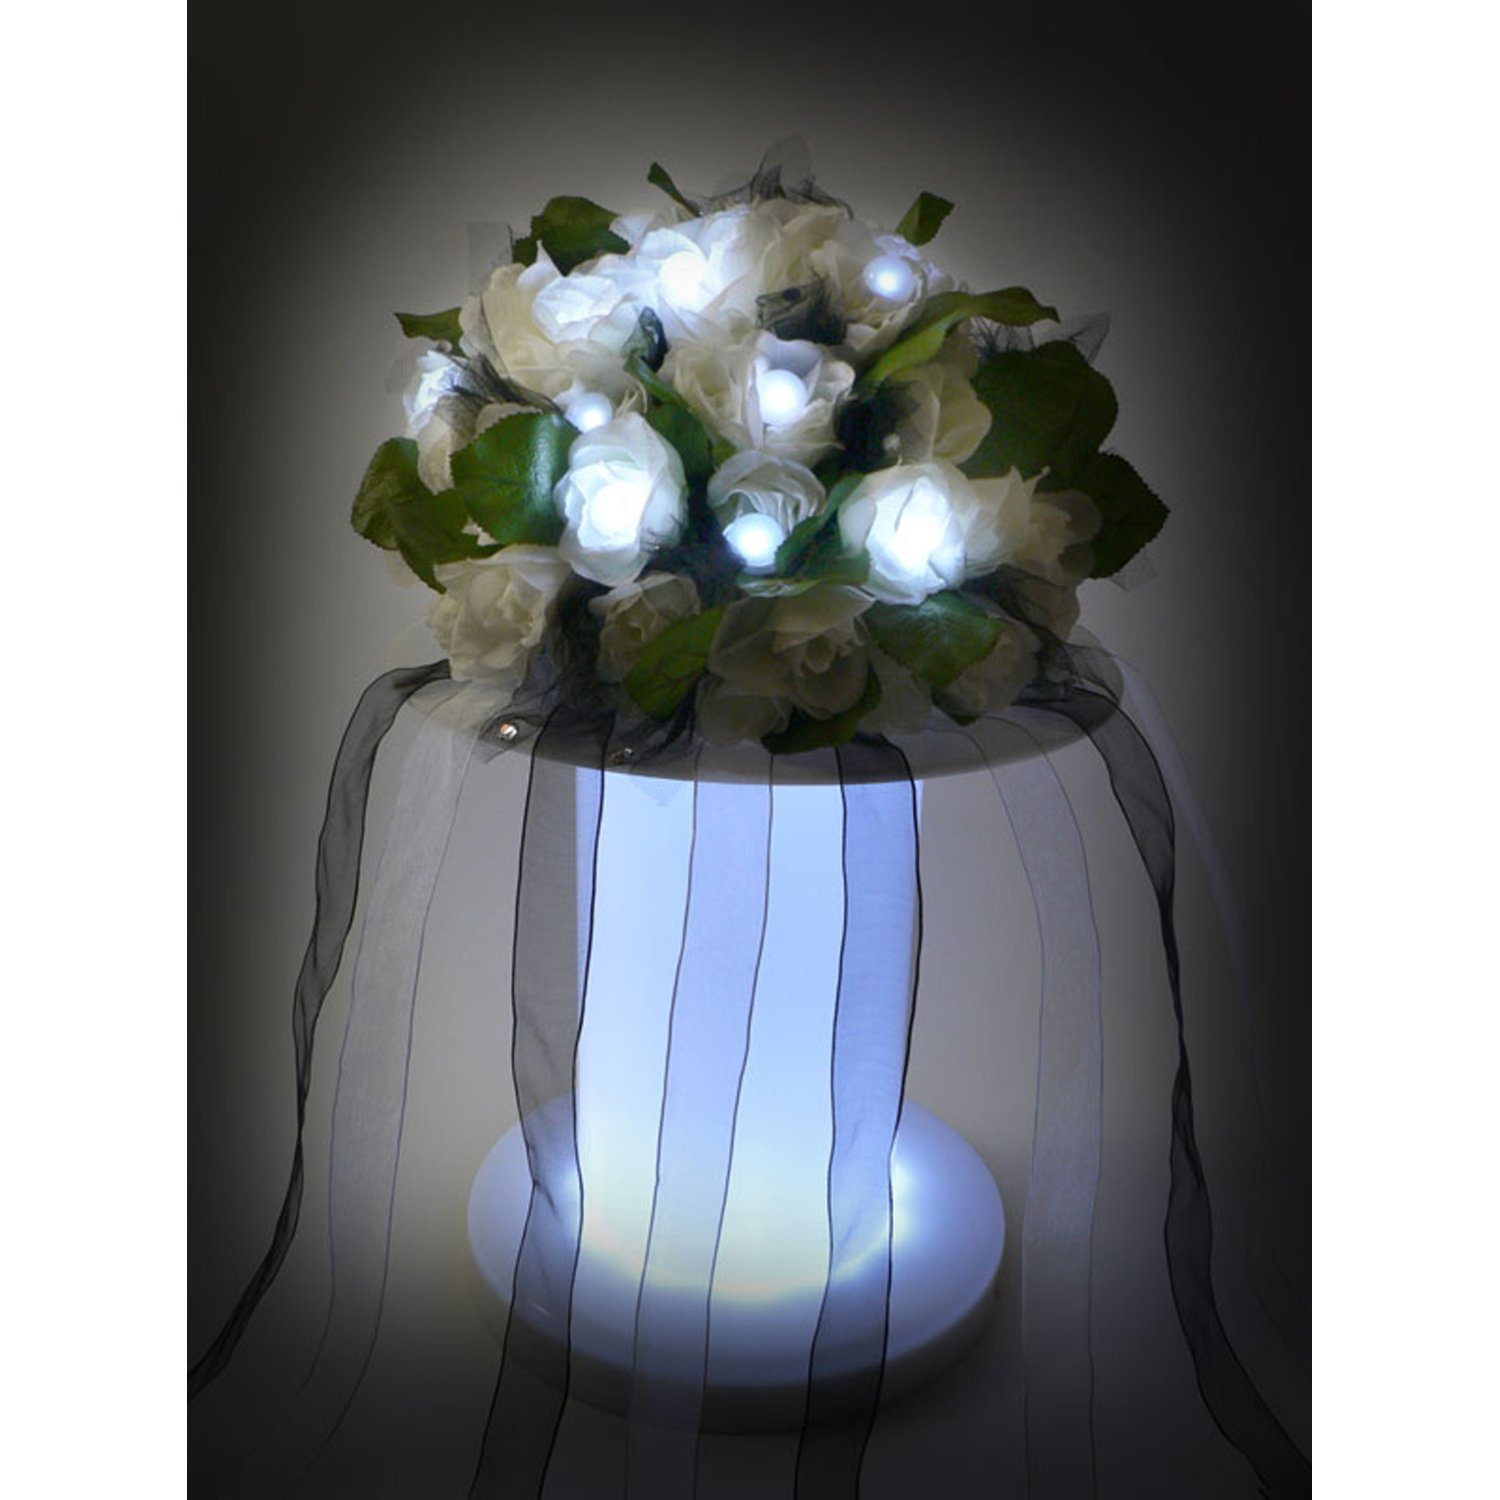 300Pcs/Lot Battery Operated Fairy Pearls Mini LED Light,Multicolor Floating LED Berries Light For Wedding Party Event Decoration(China (Mainland))